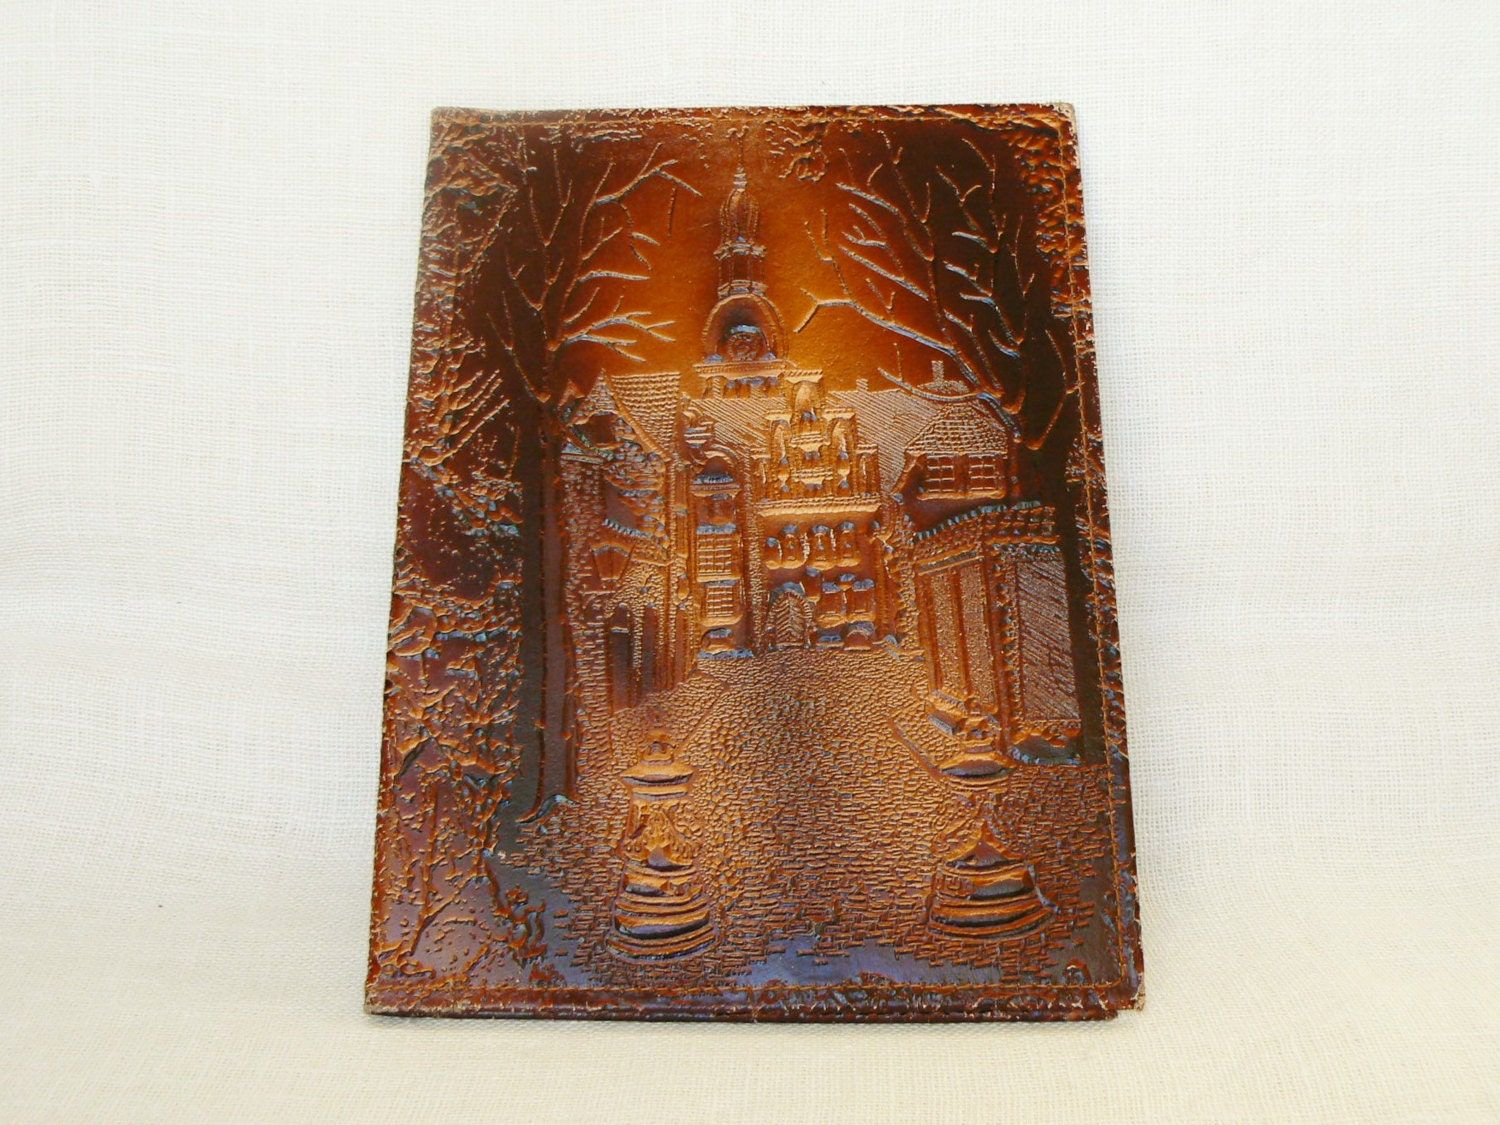 Leather Book Cover Pattern : Vintage leather book covers hardcovered pressed pattern